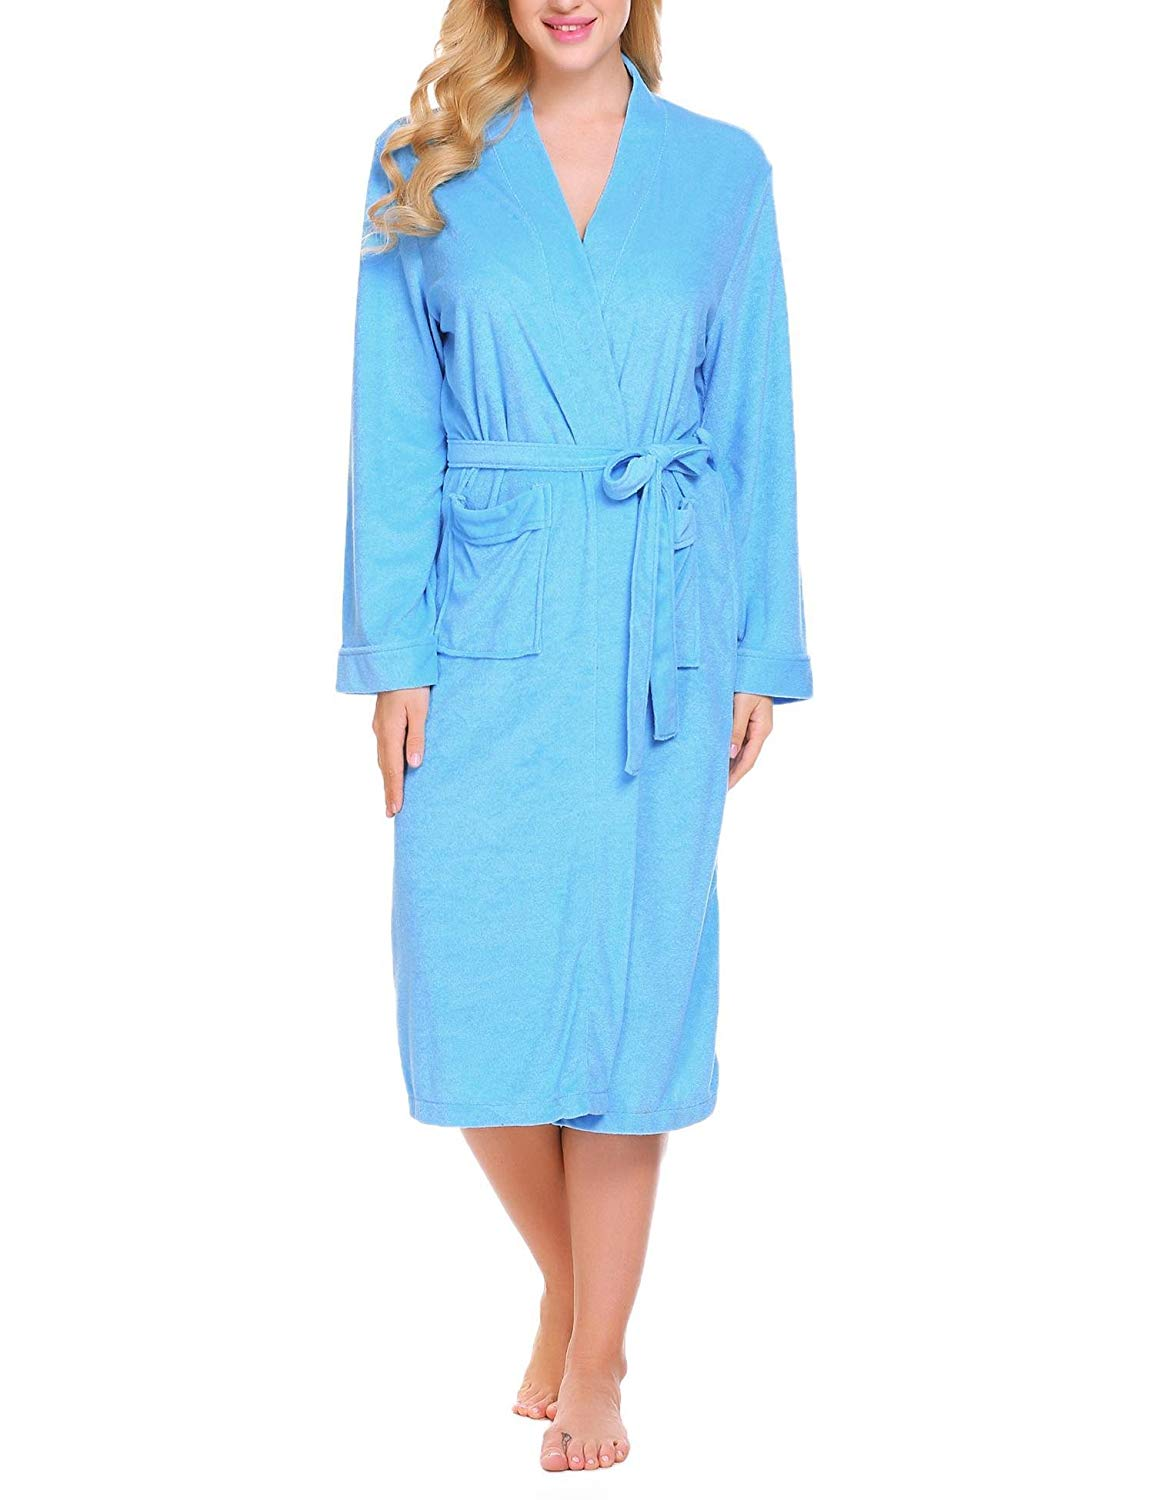 best selection of thoughts on premium selection Cheap Seersucker Robes For Women, find Seersucker Robes For ...